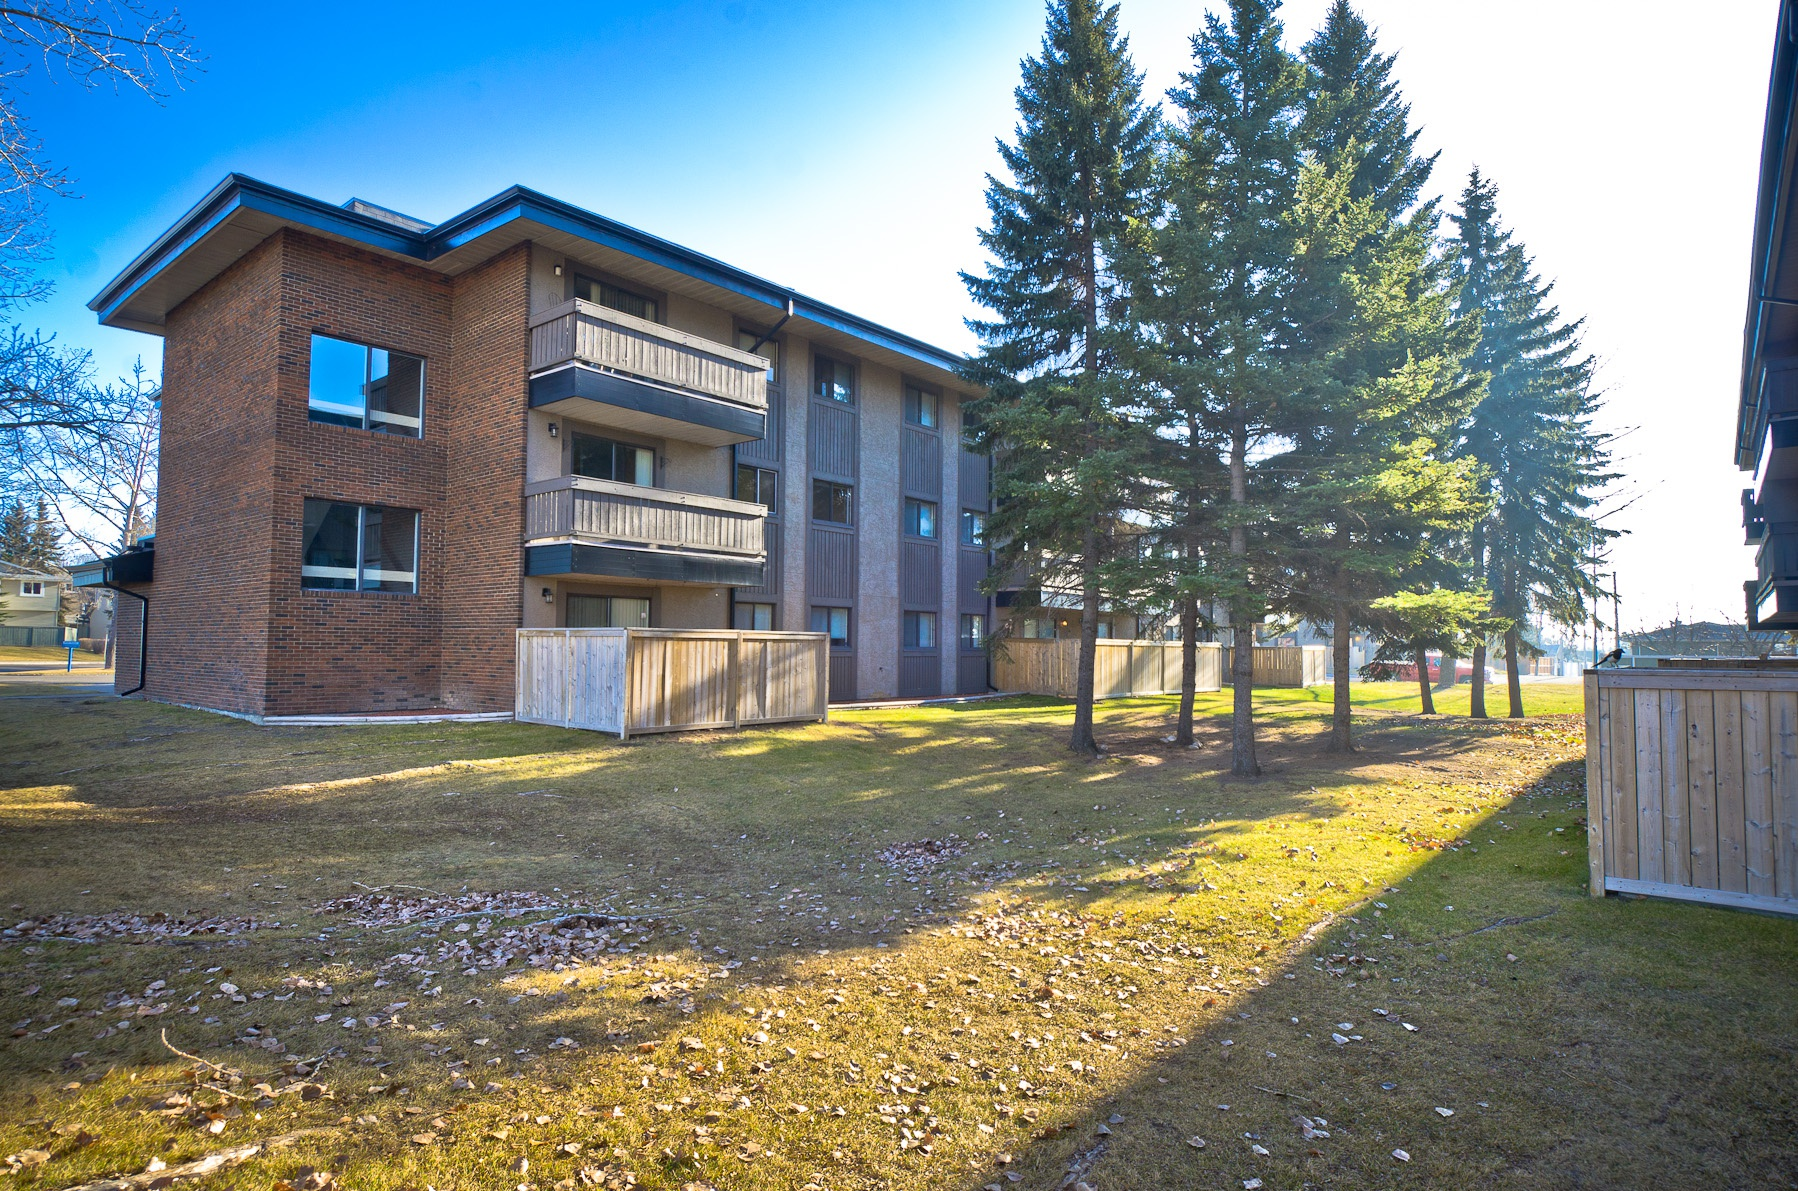 1185 McKinnon Dr. NE in Calgary, AB is Now Available